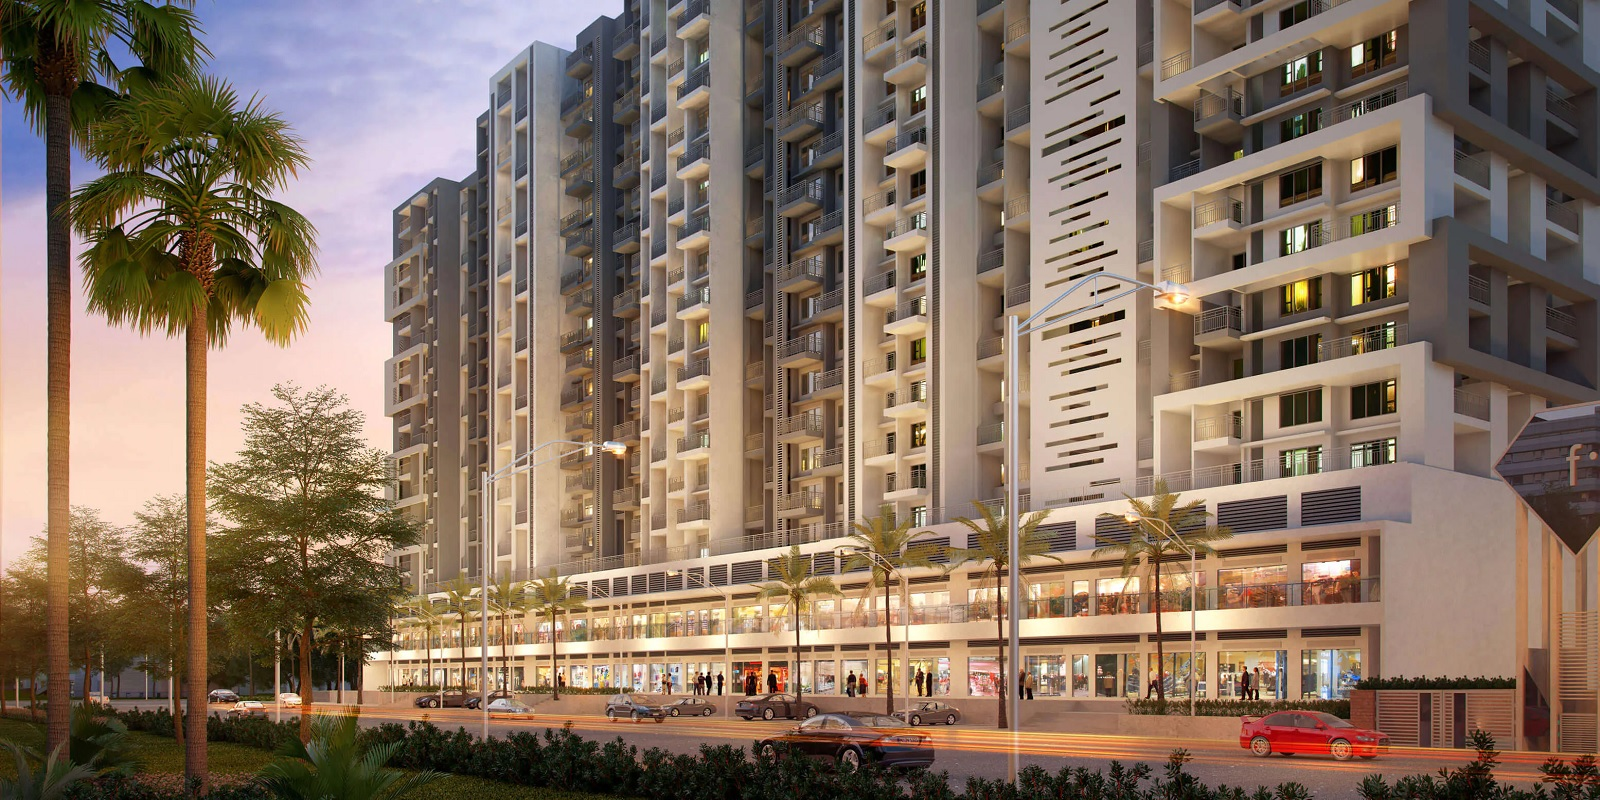 brahmacorp f residences phase ii project project large image1